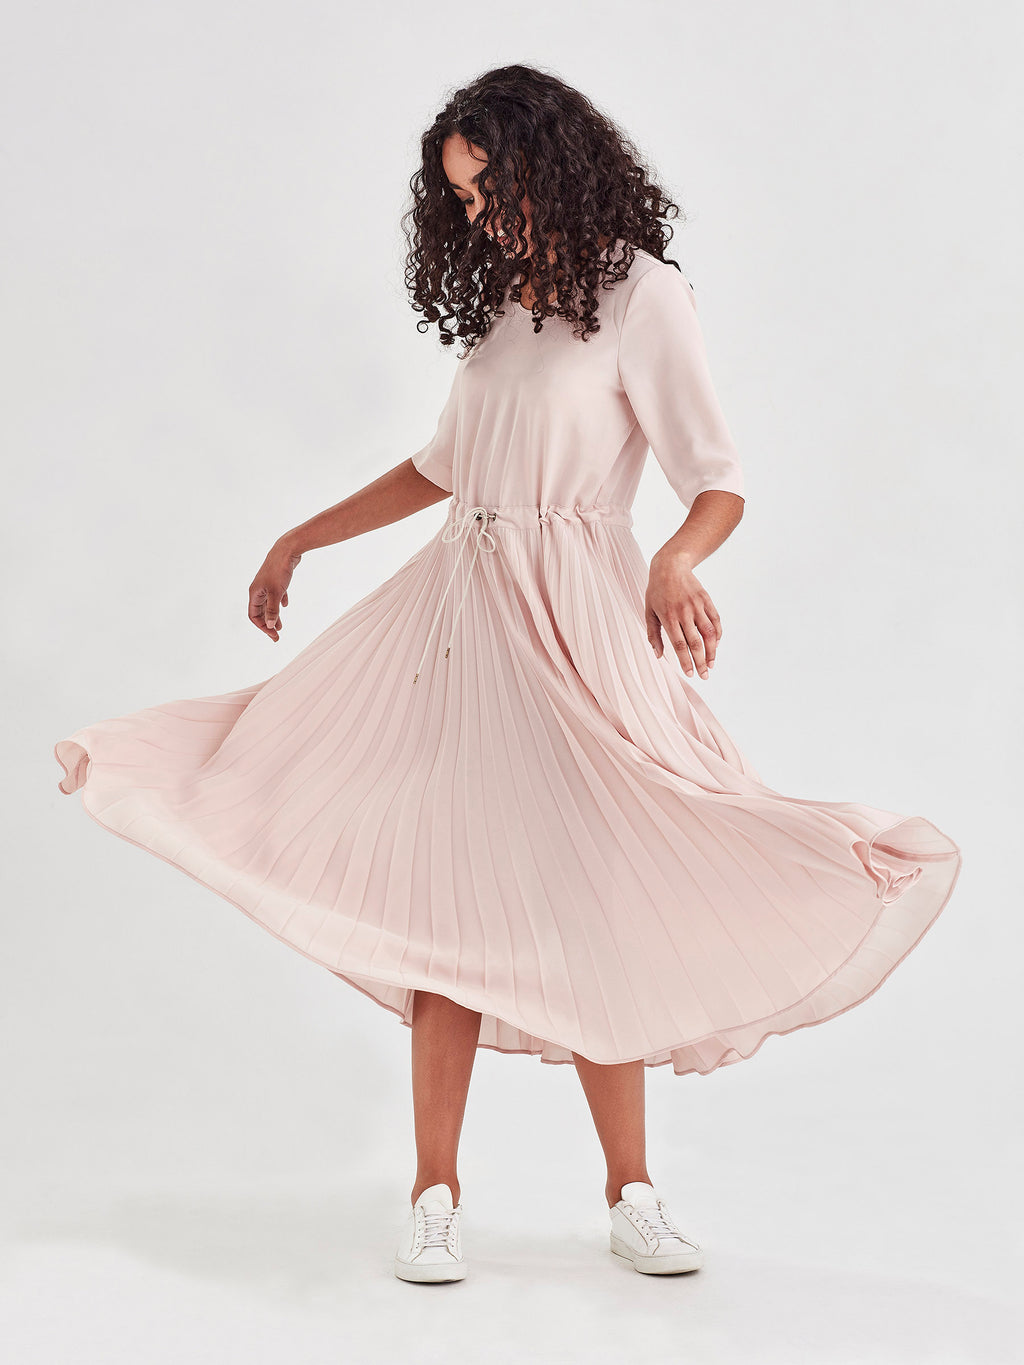 Betsy Pleat Dress (Matte Pleat) Ballet